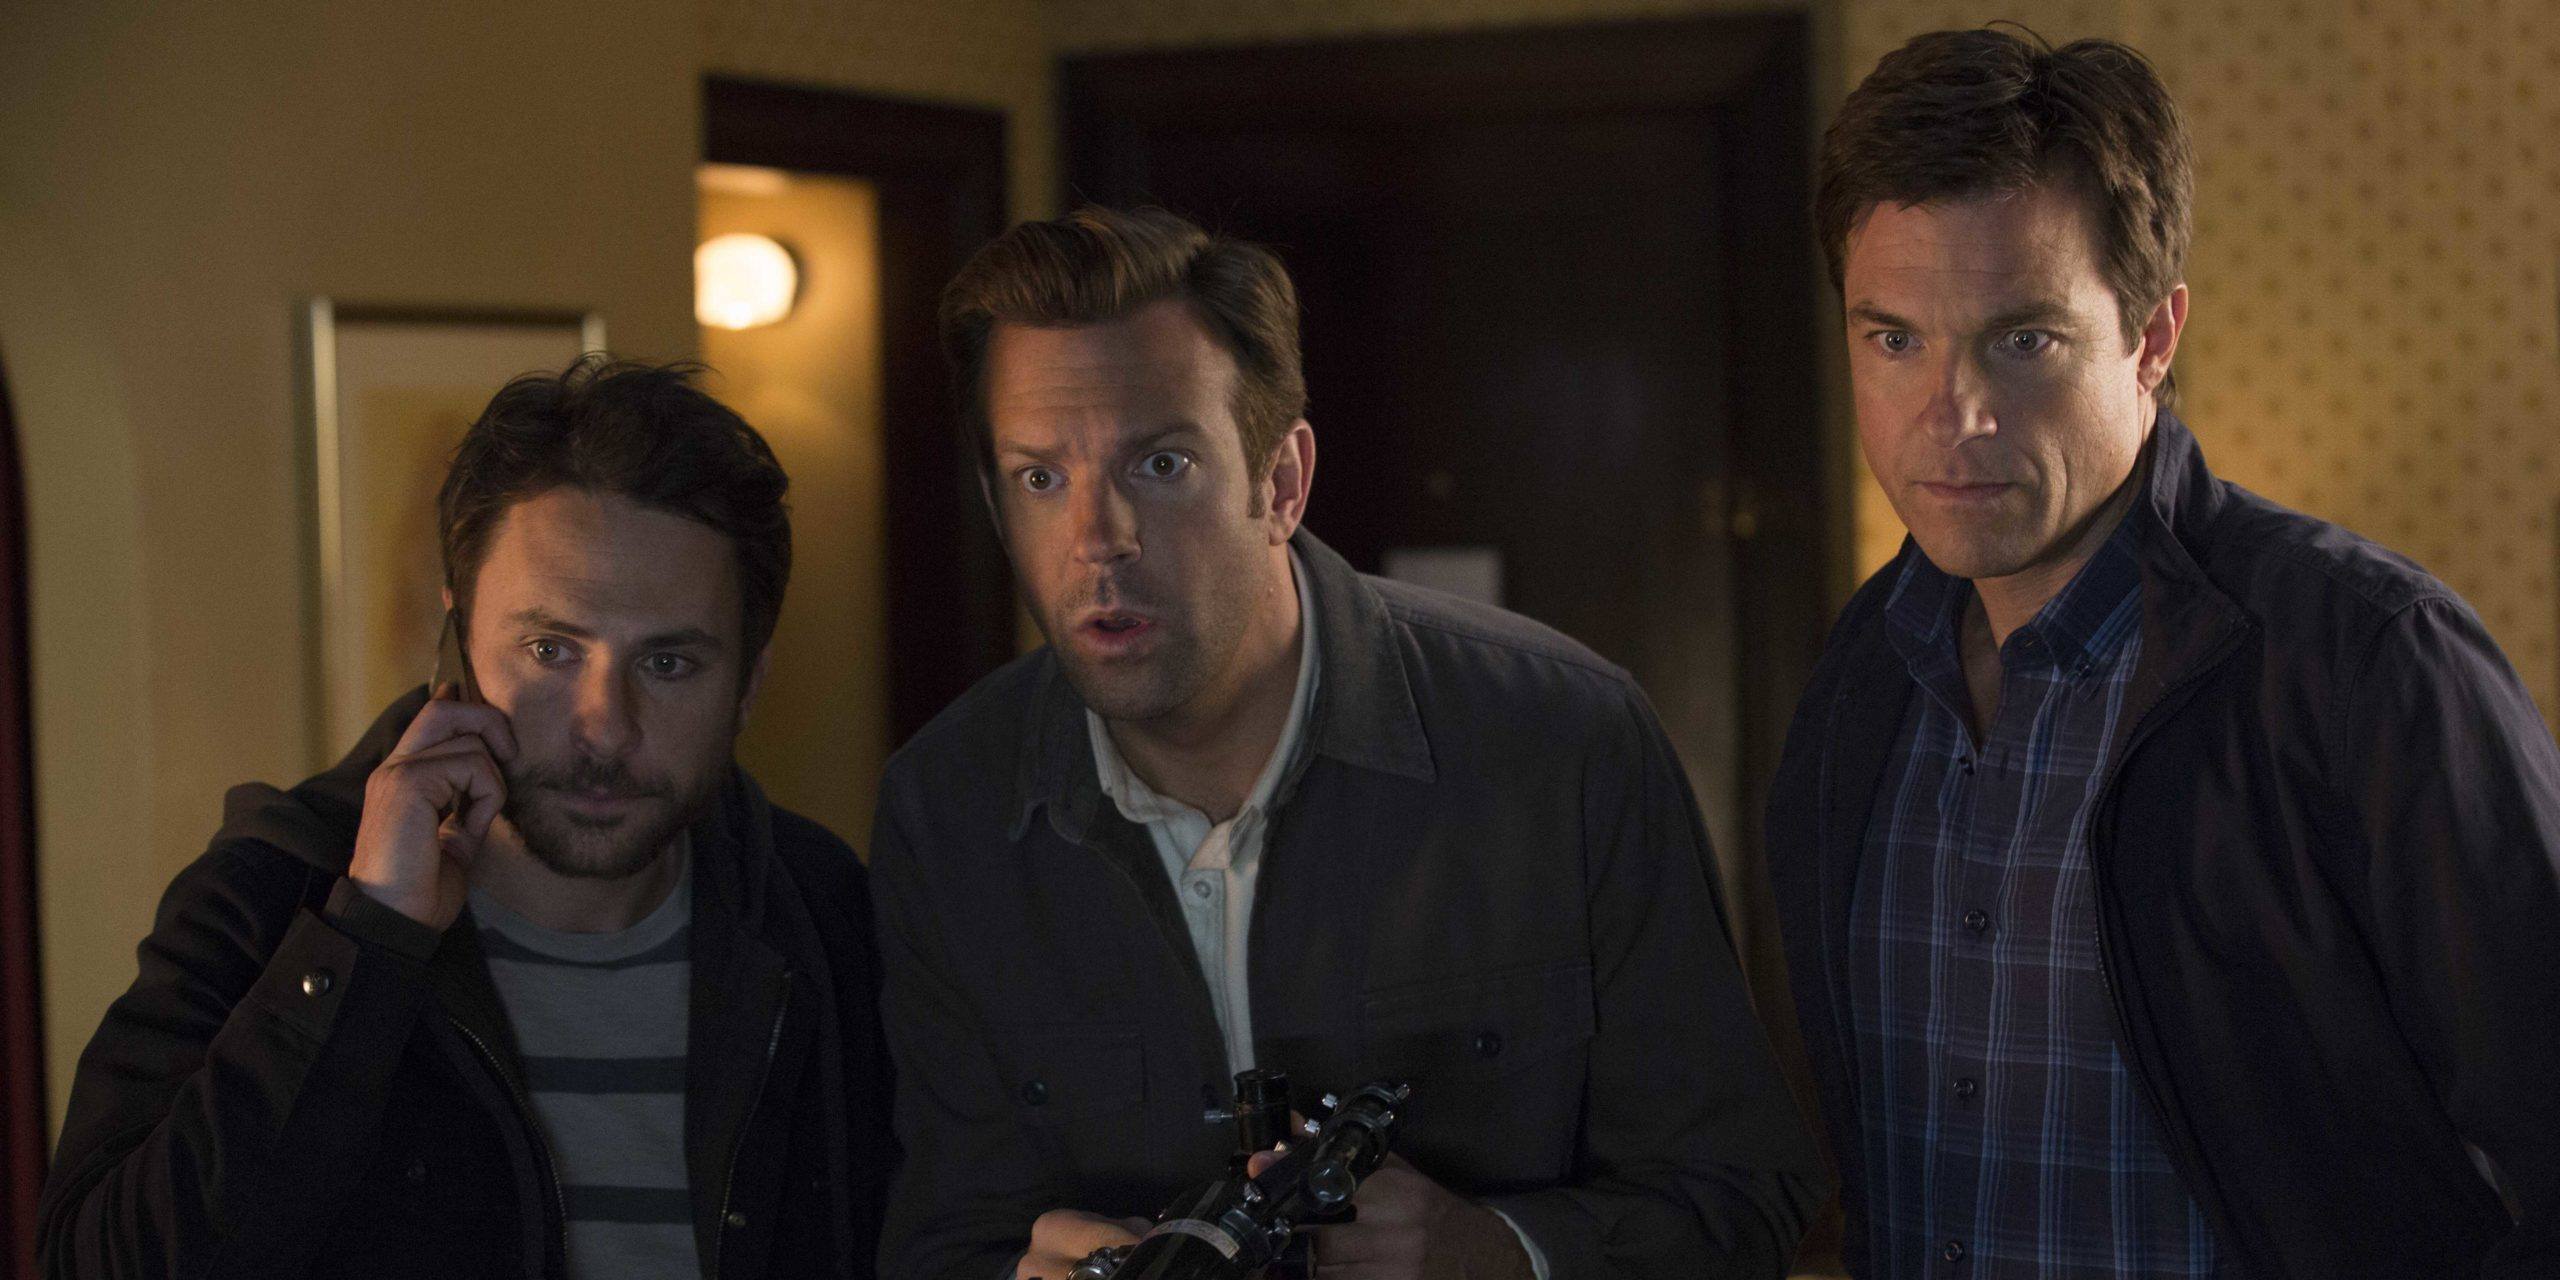 Photo du film Comment tuer son boss 2 avec Charlie Day, Jason Sudeikis et Jason Bateman